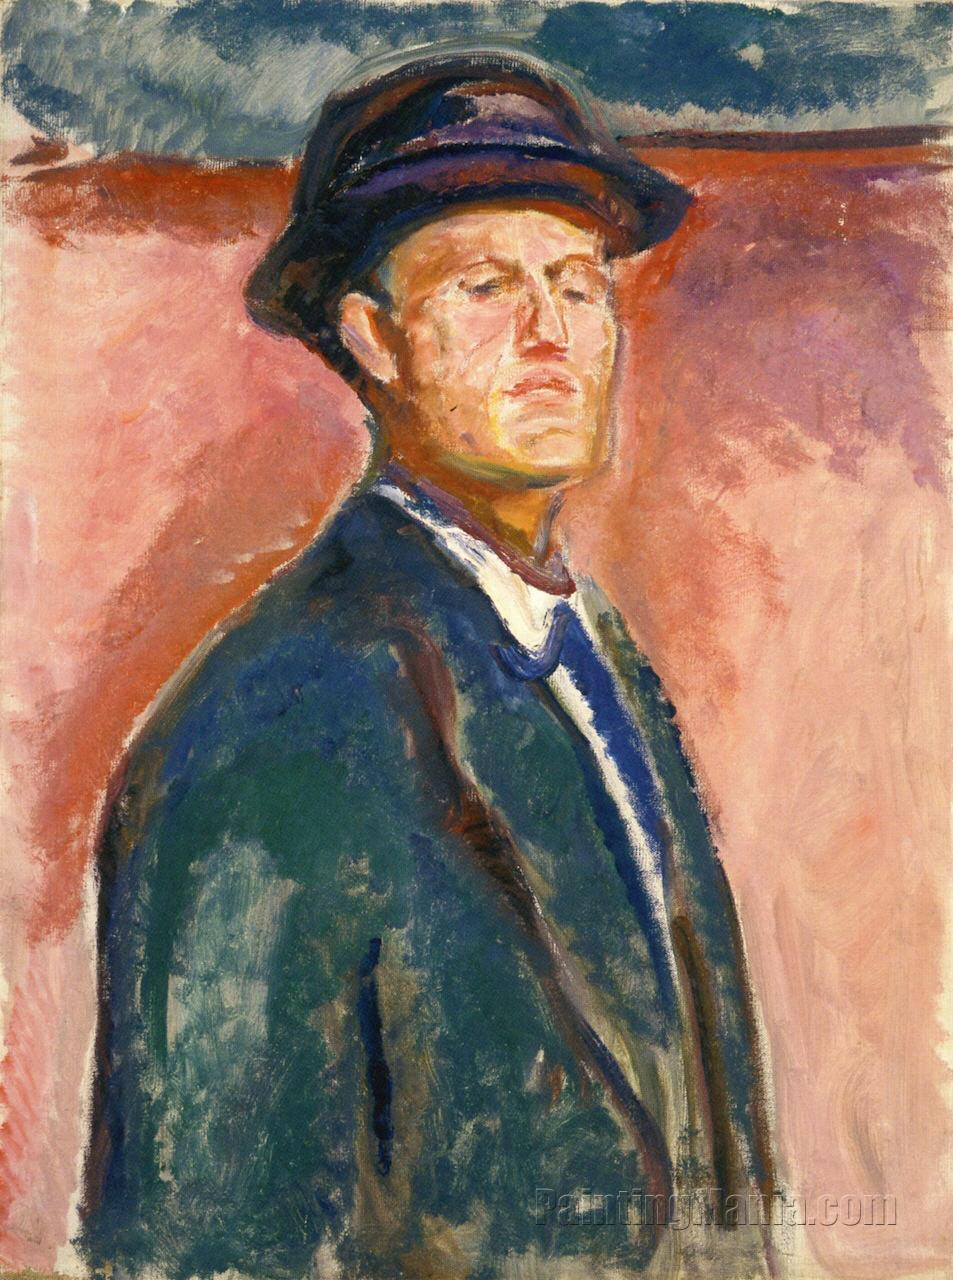 Portrait With Hat - Edvard Munch Paintings